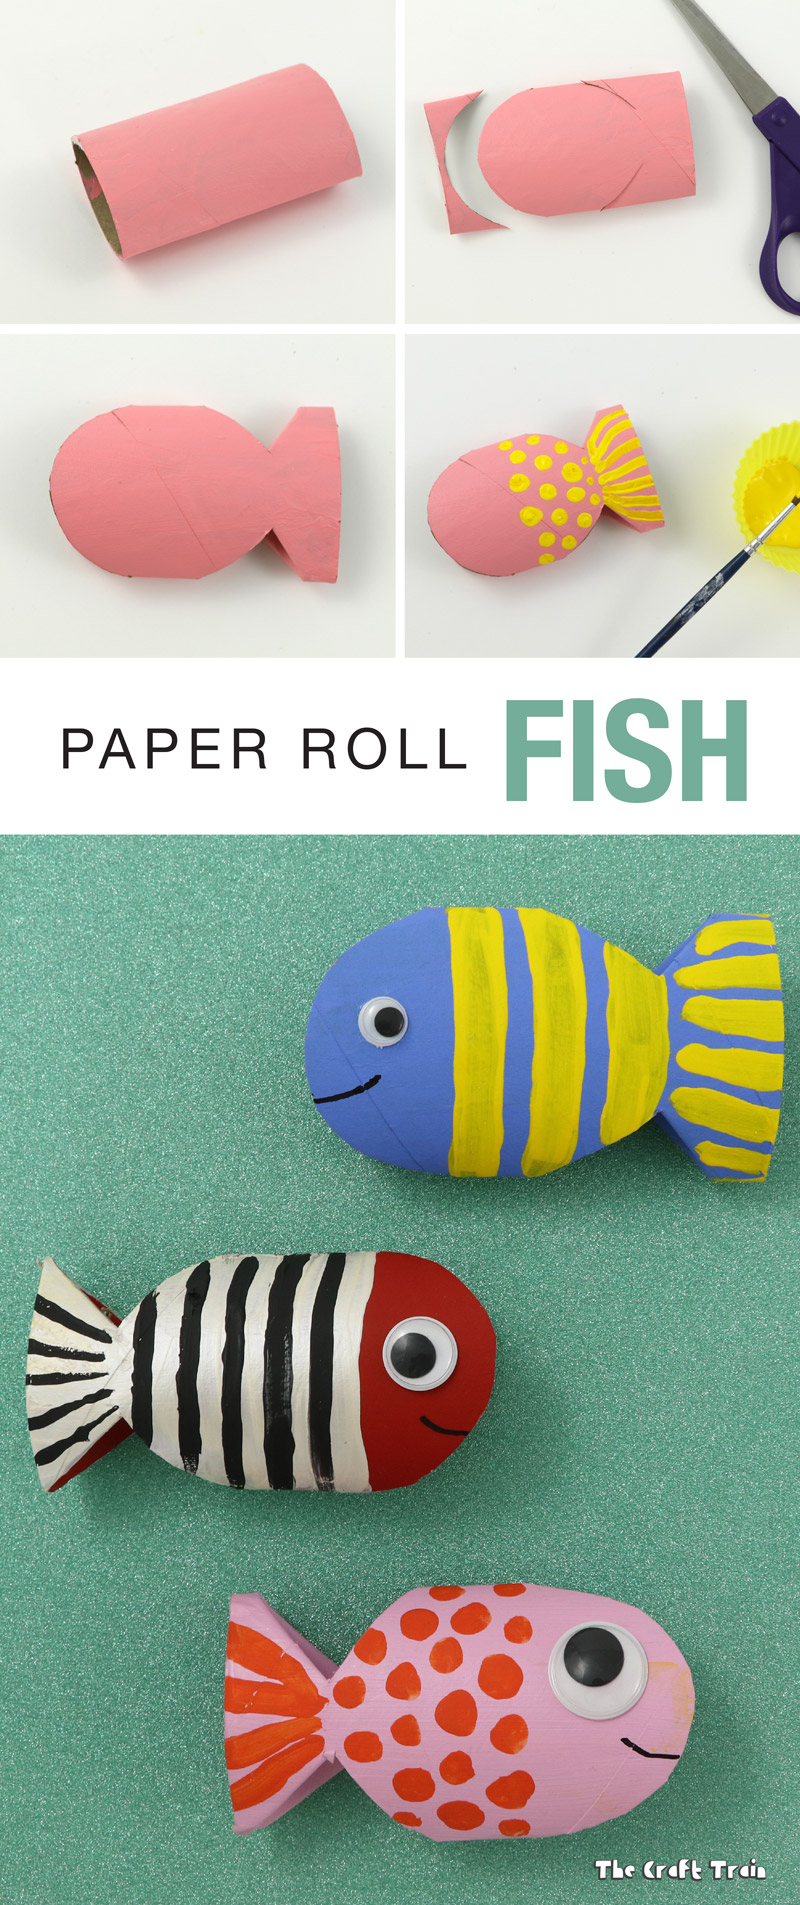 Paper roll fish recycling craft the craft train for How to make recycled paper crafts